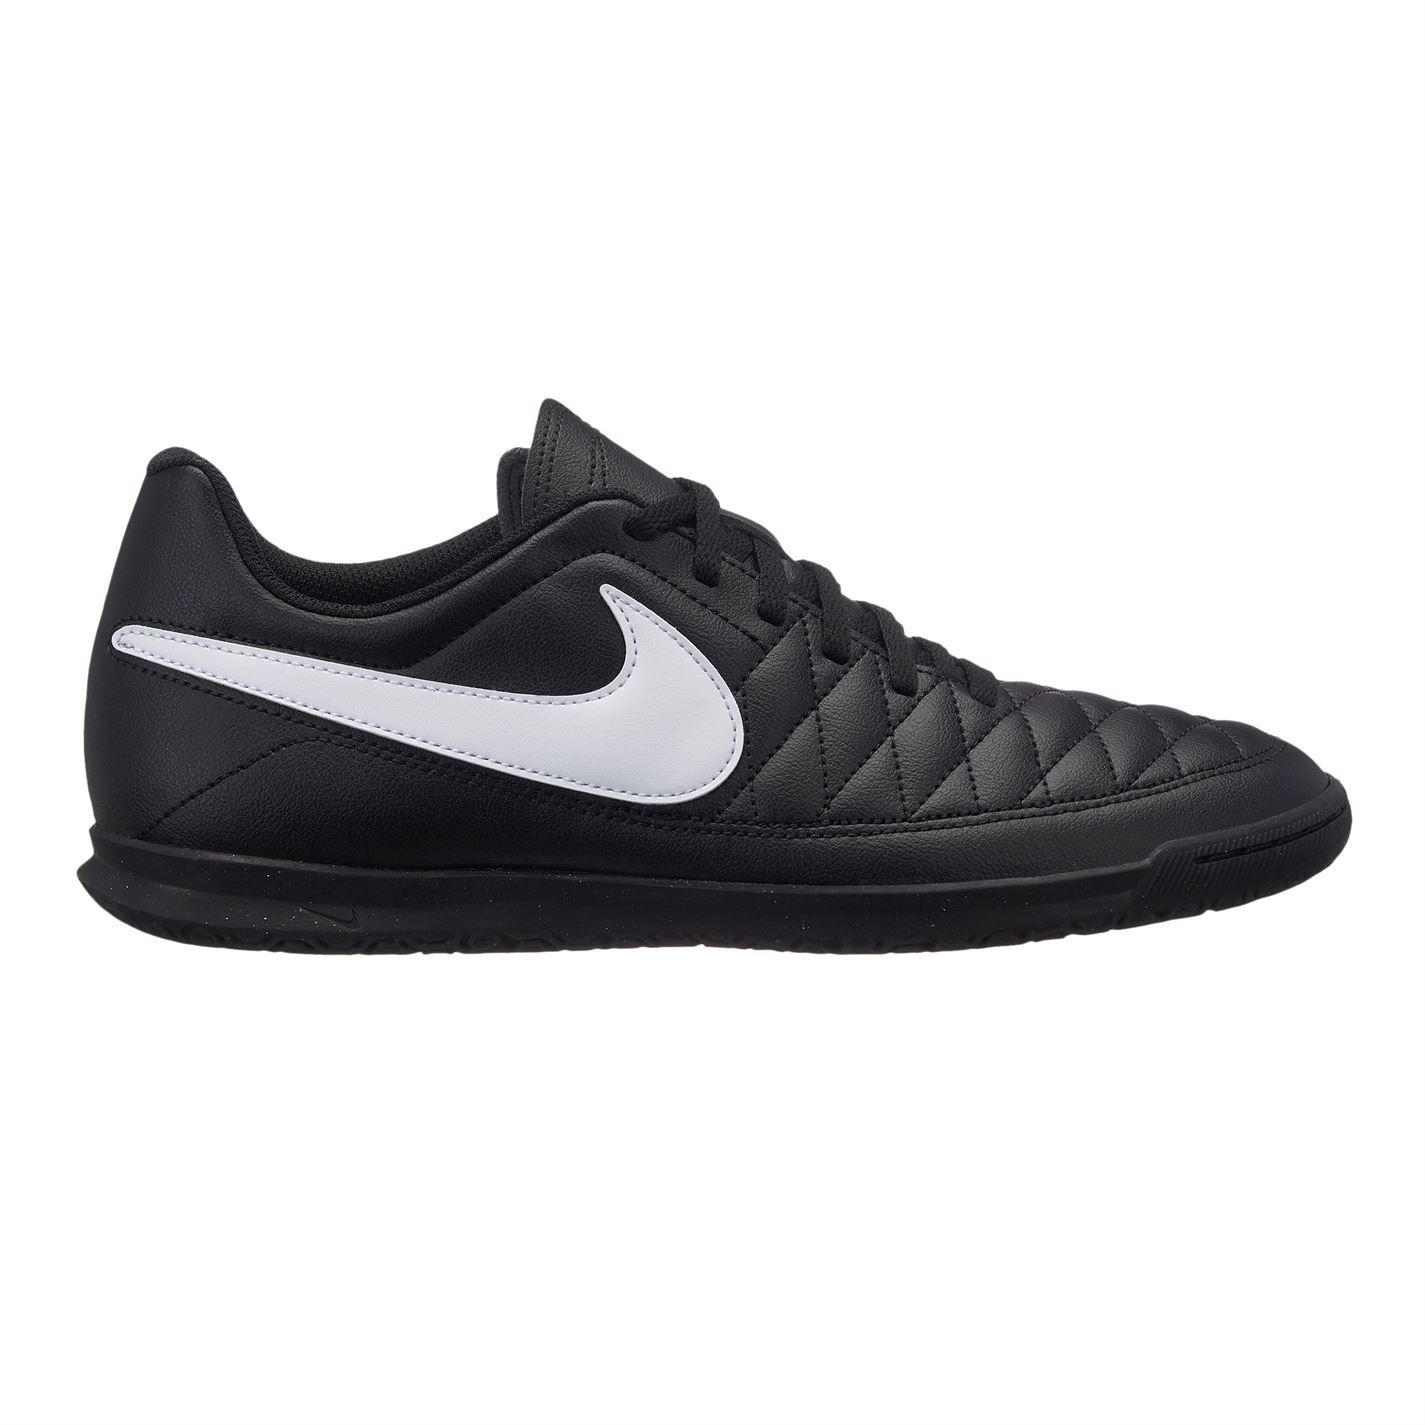 Nike-majestry-Indoor-Football-Baskets-Pour-Homme-Football-Futsal-Chaussures-Baskets-Bottes miniature 18